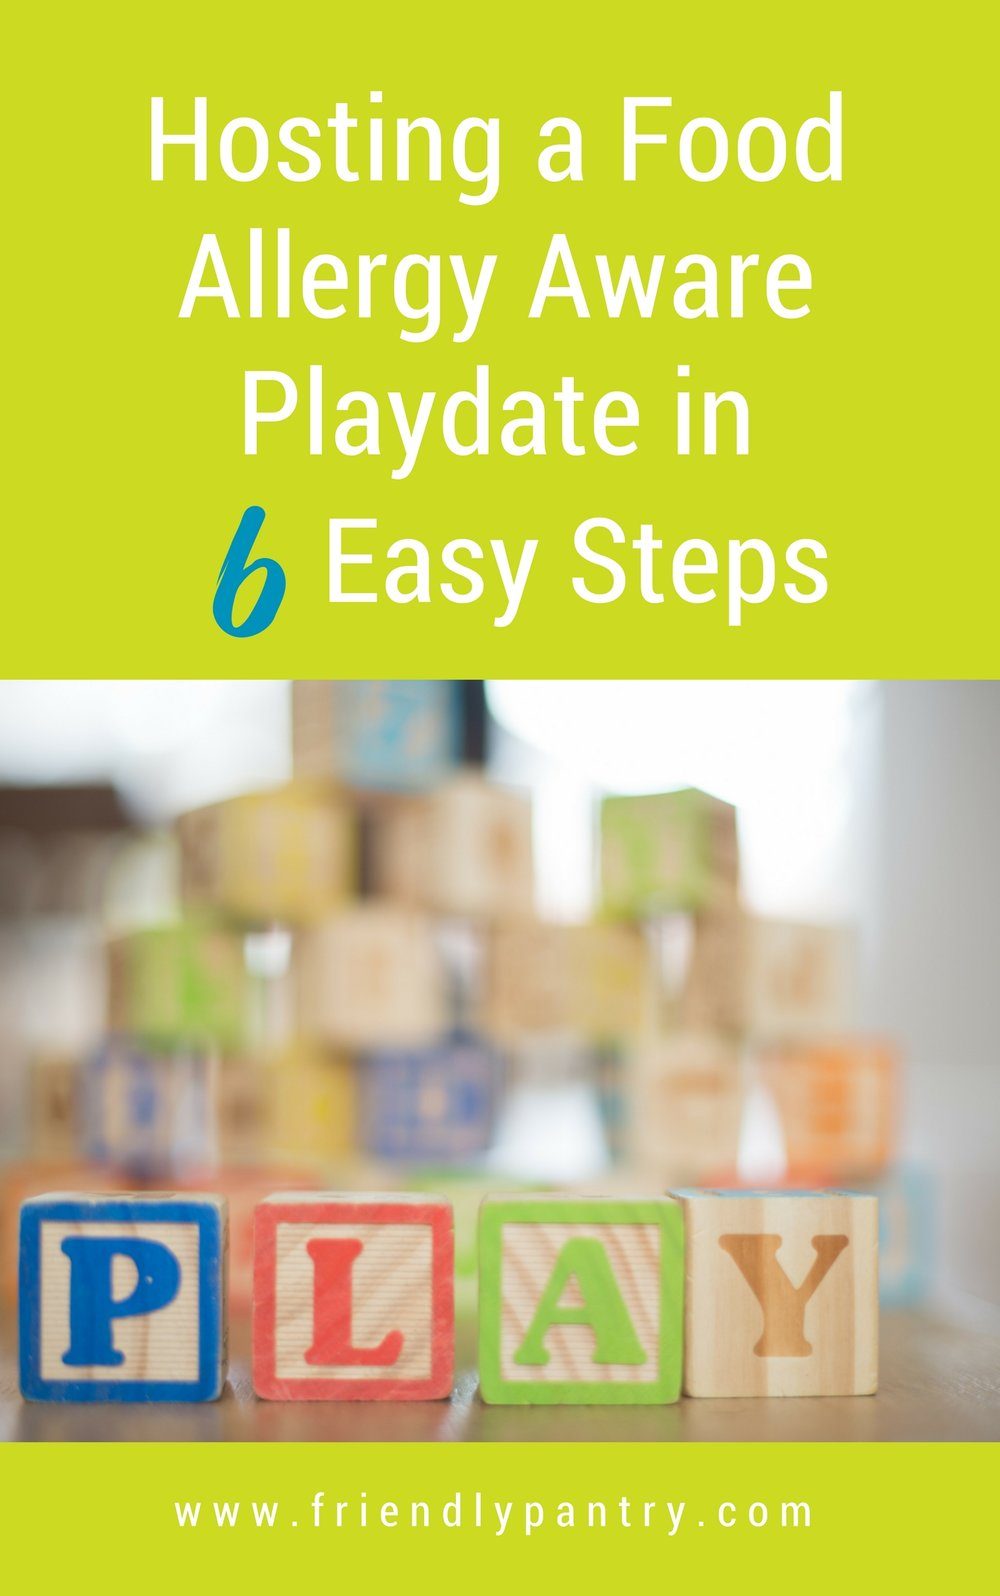 Mom inspiration for playdate ideas